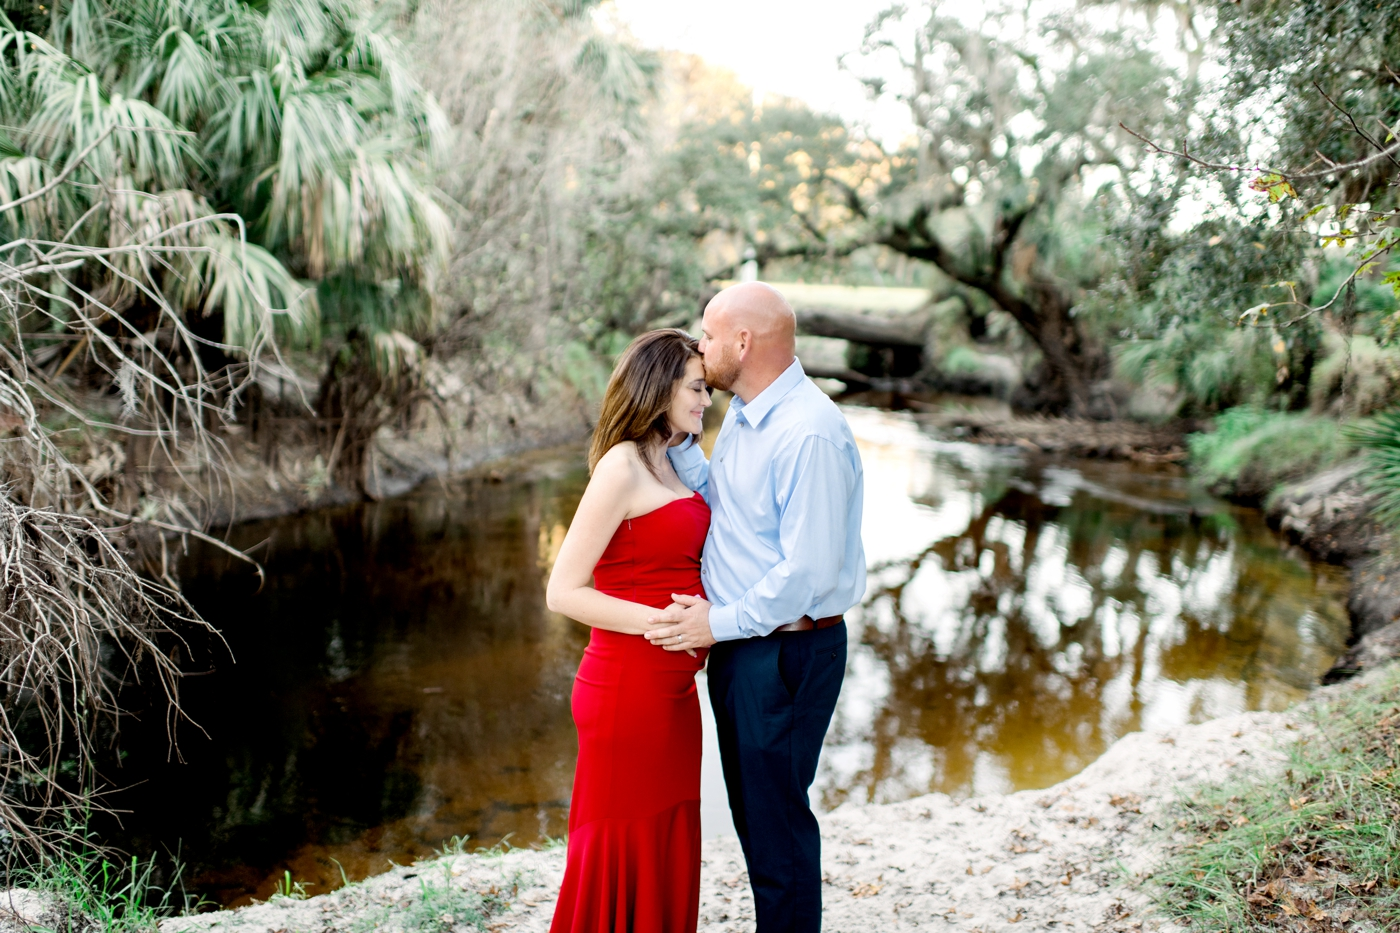 winter garden maternity photos